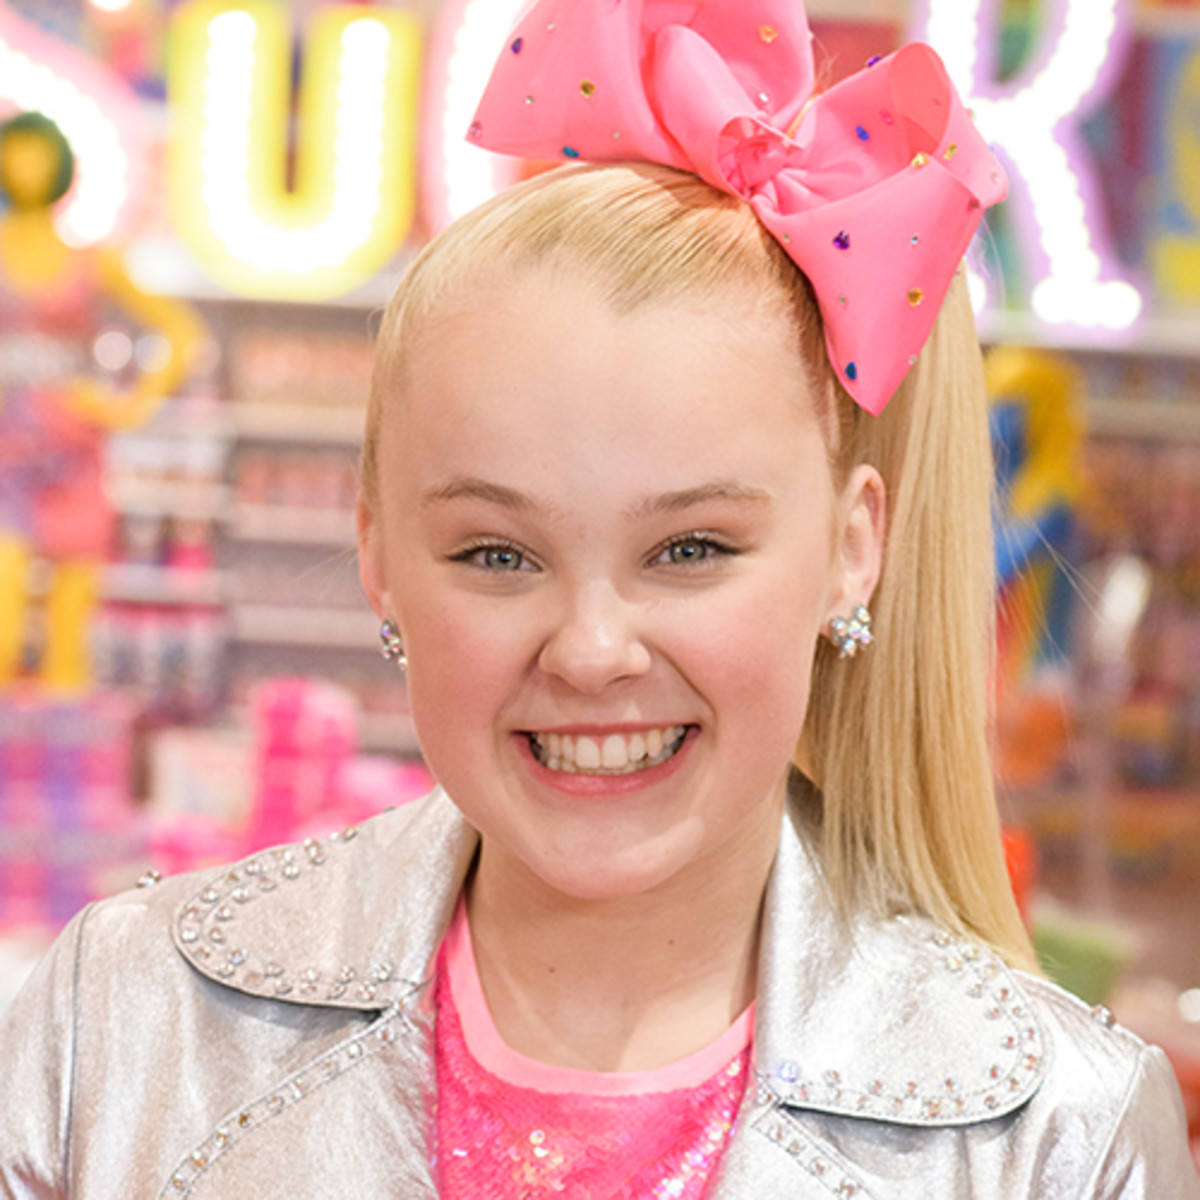 How well do you know Jojo Siwa?